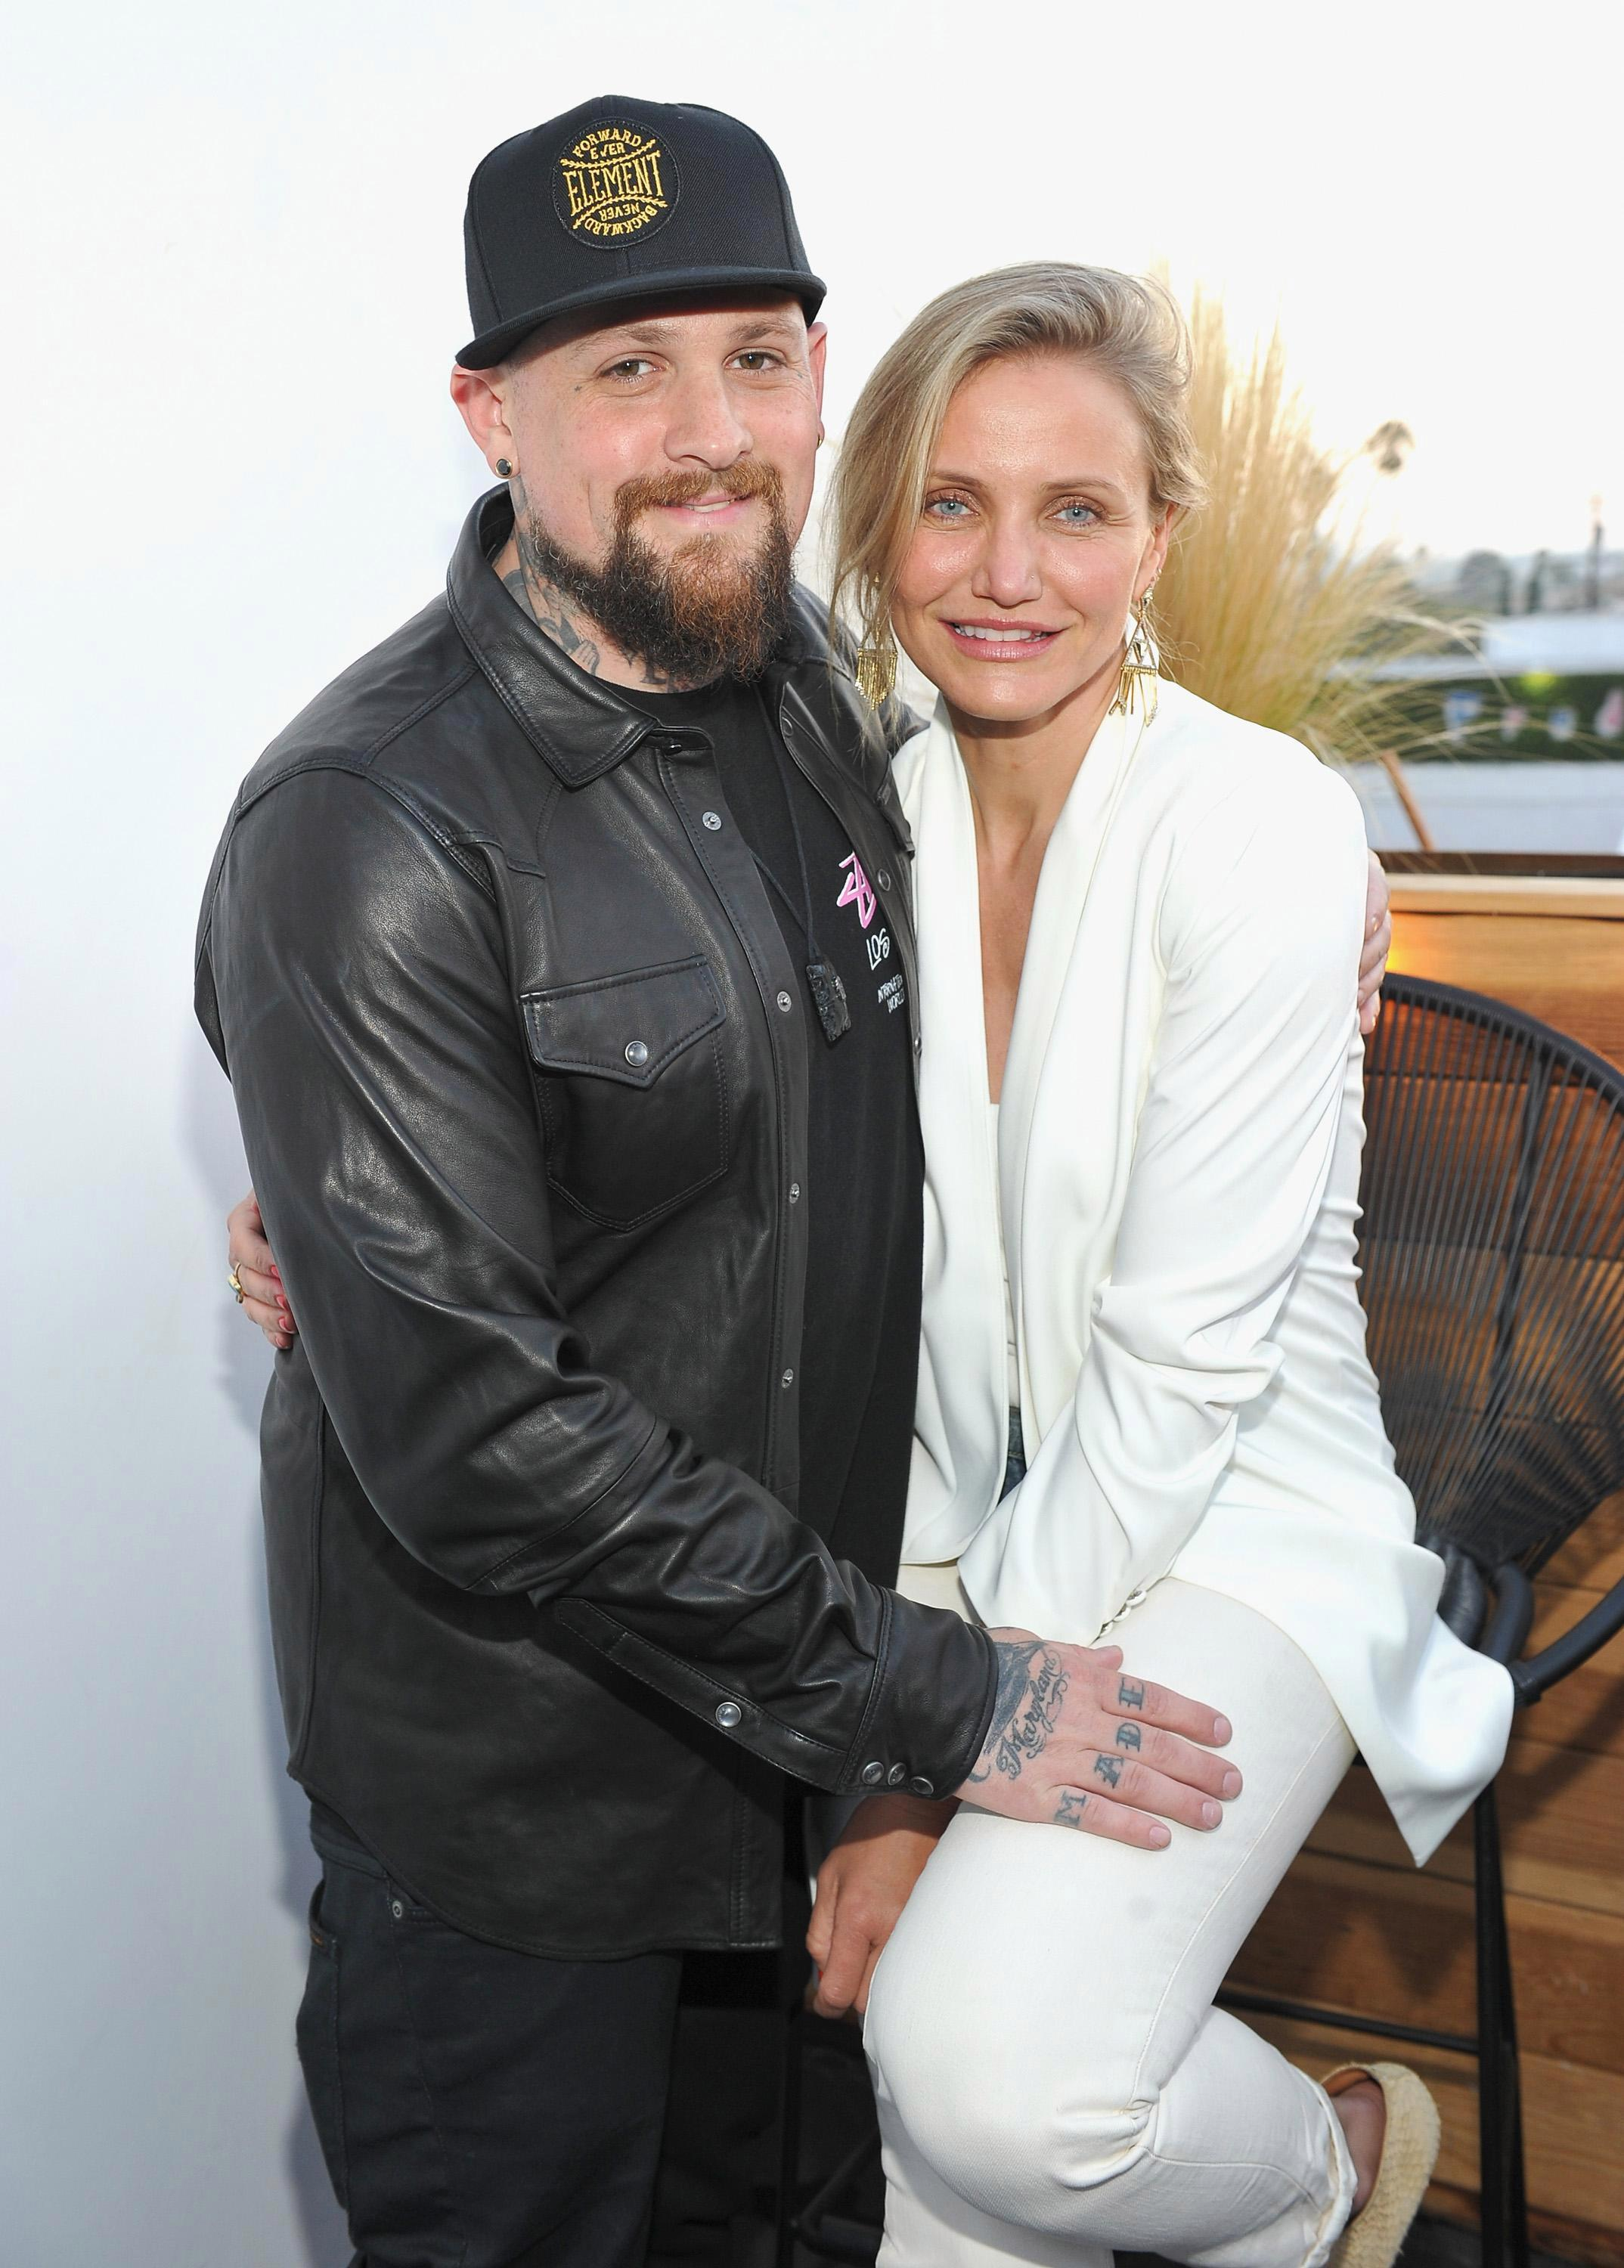 Cameron Diaz, 45, has 'retired' from acting to spend time at home with husband Benji Madden, 39